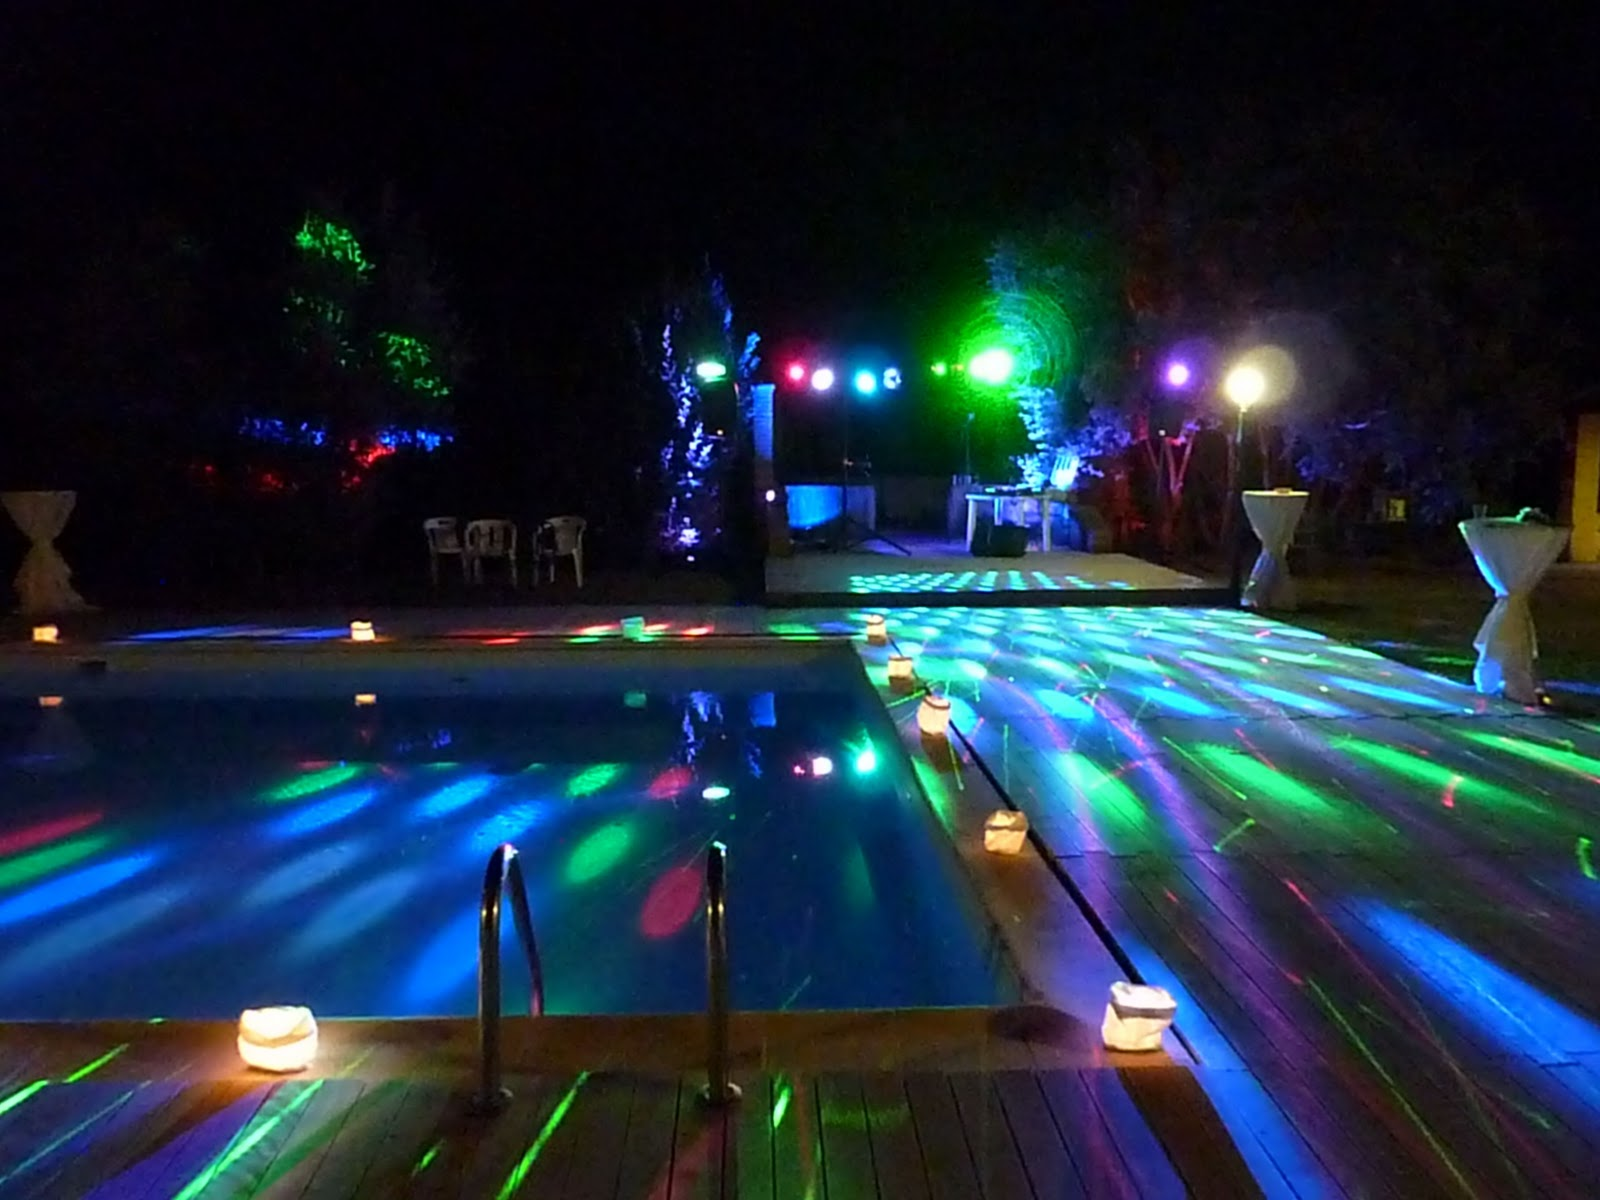 Pool Party Lighting Ideas pool party lights ideas outline with stakes and light balls Wedding Dj In Tuscany Pink Panther Dj Service Mobile Disco At A Wedding Disco Party In Lajatico Pisa Dj Service In Chiantifirenzeluccasiena